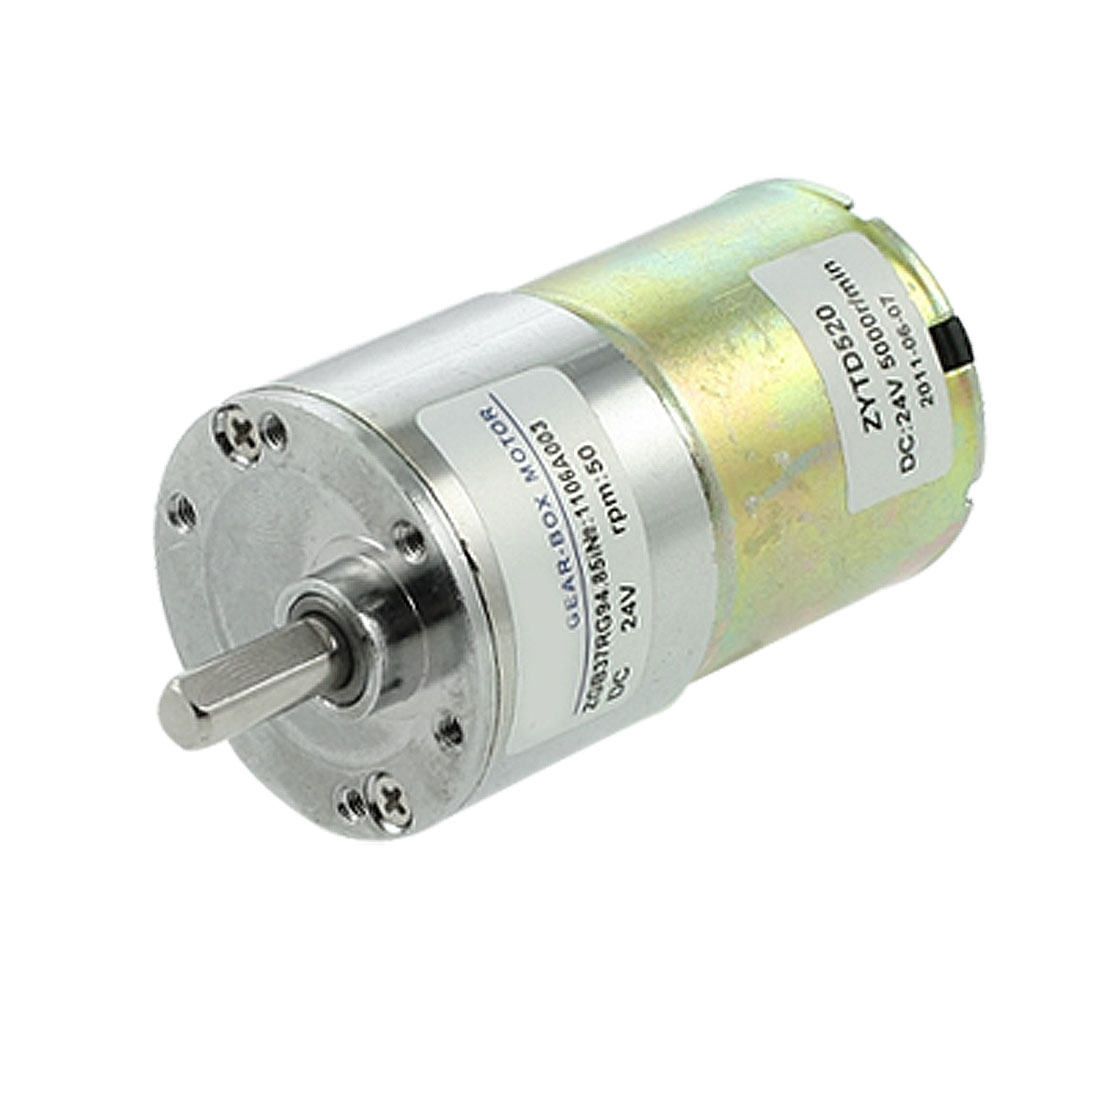 Electric-37mm-Gearbox-Dia-DC-Geared-Motor-0-33A-50RPM-24V